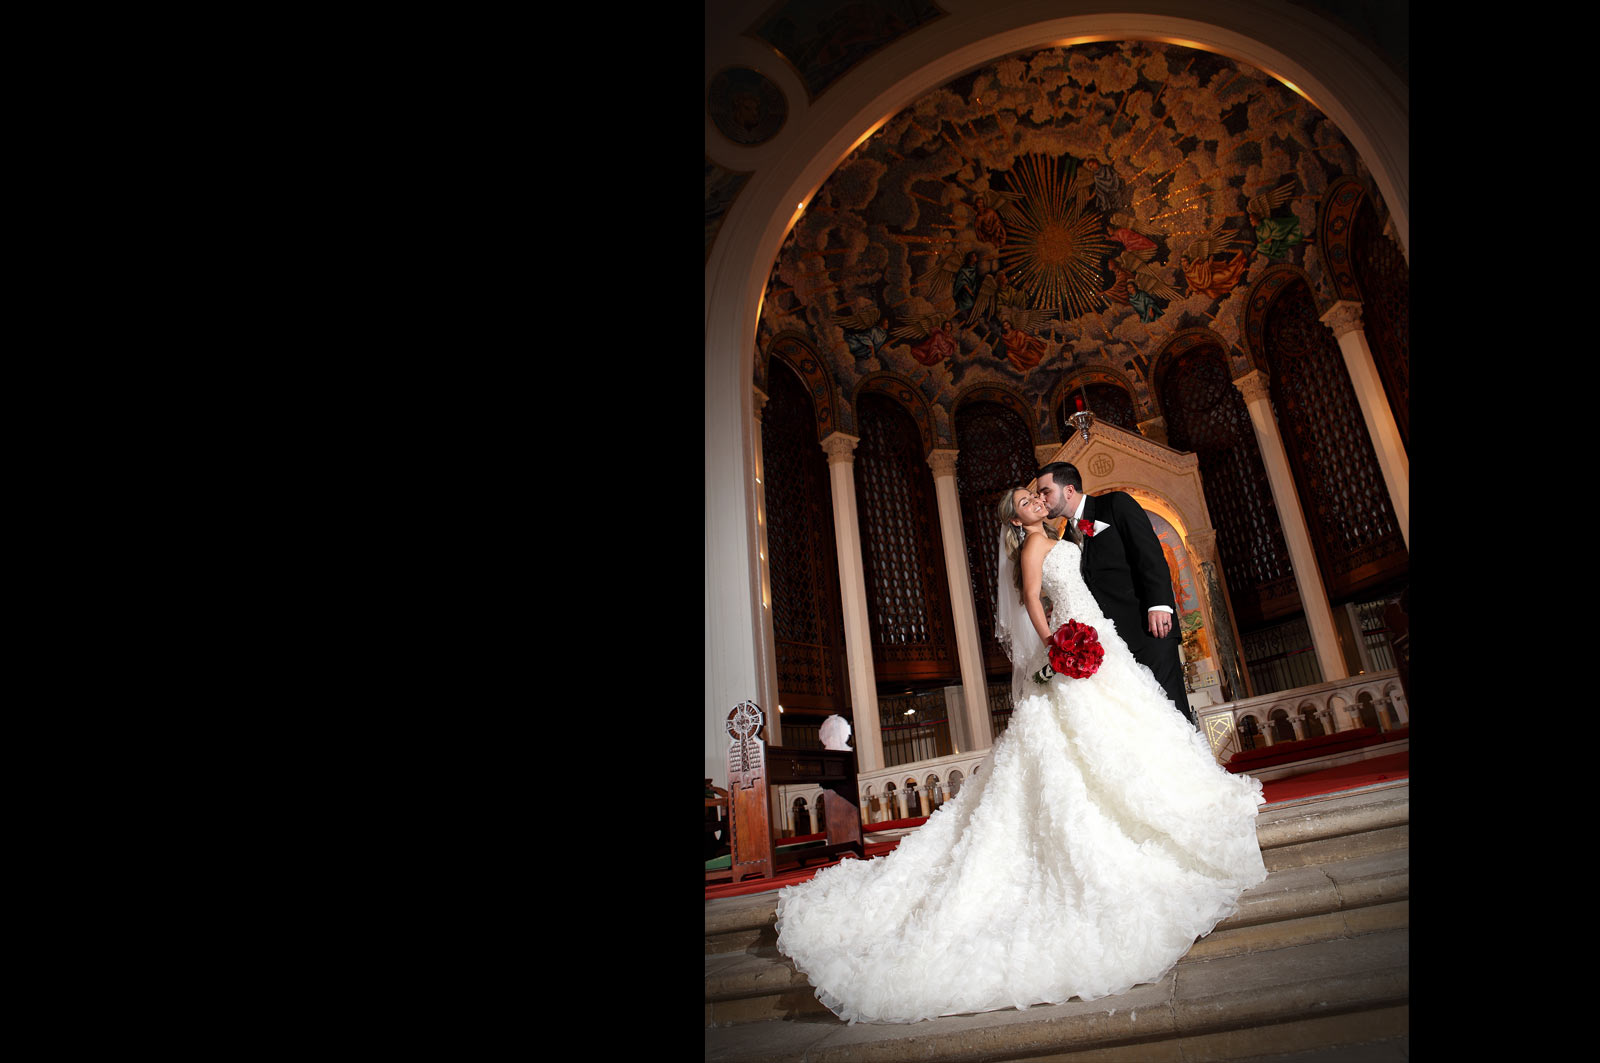 Bride and Groom inside church - Wedding Chapel